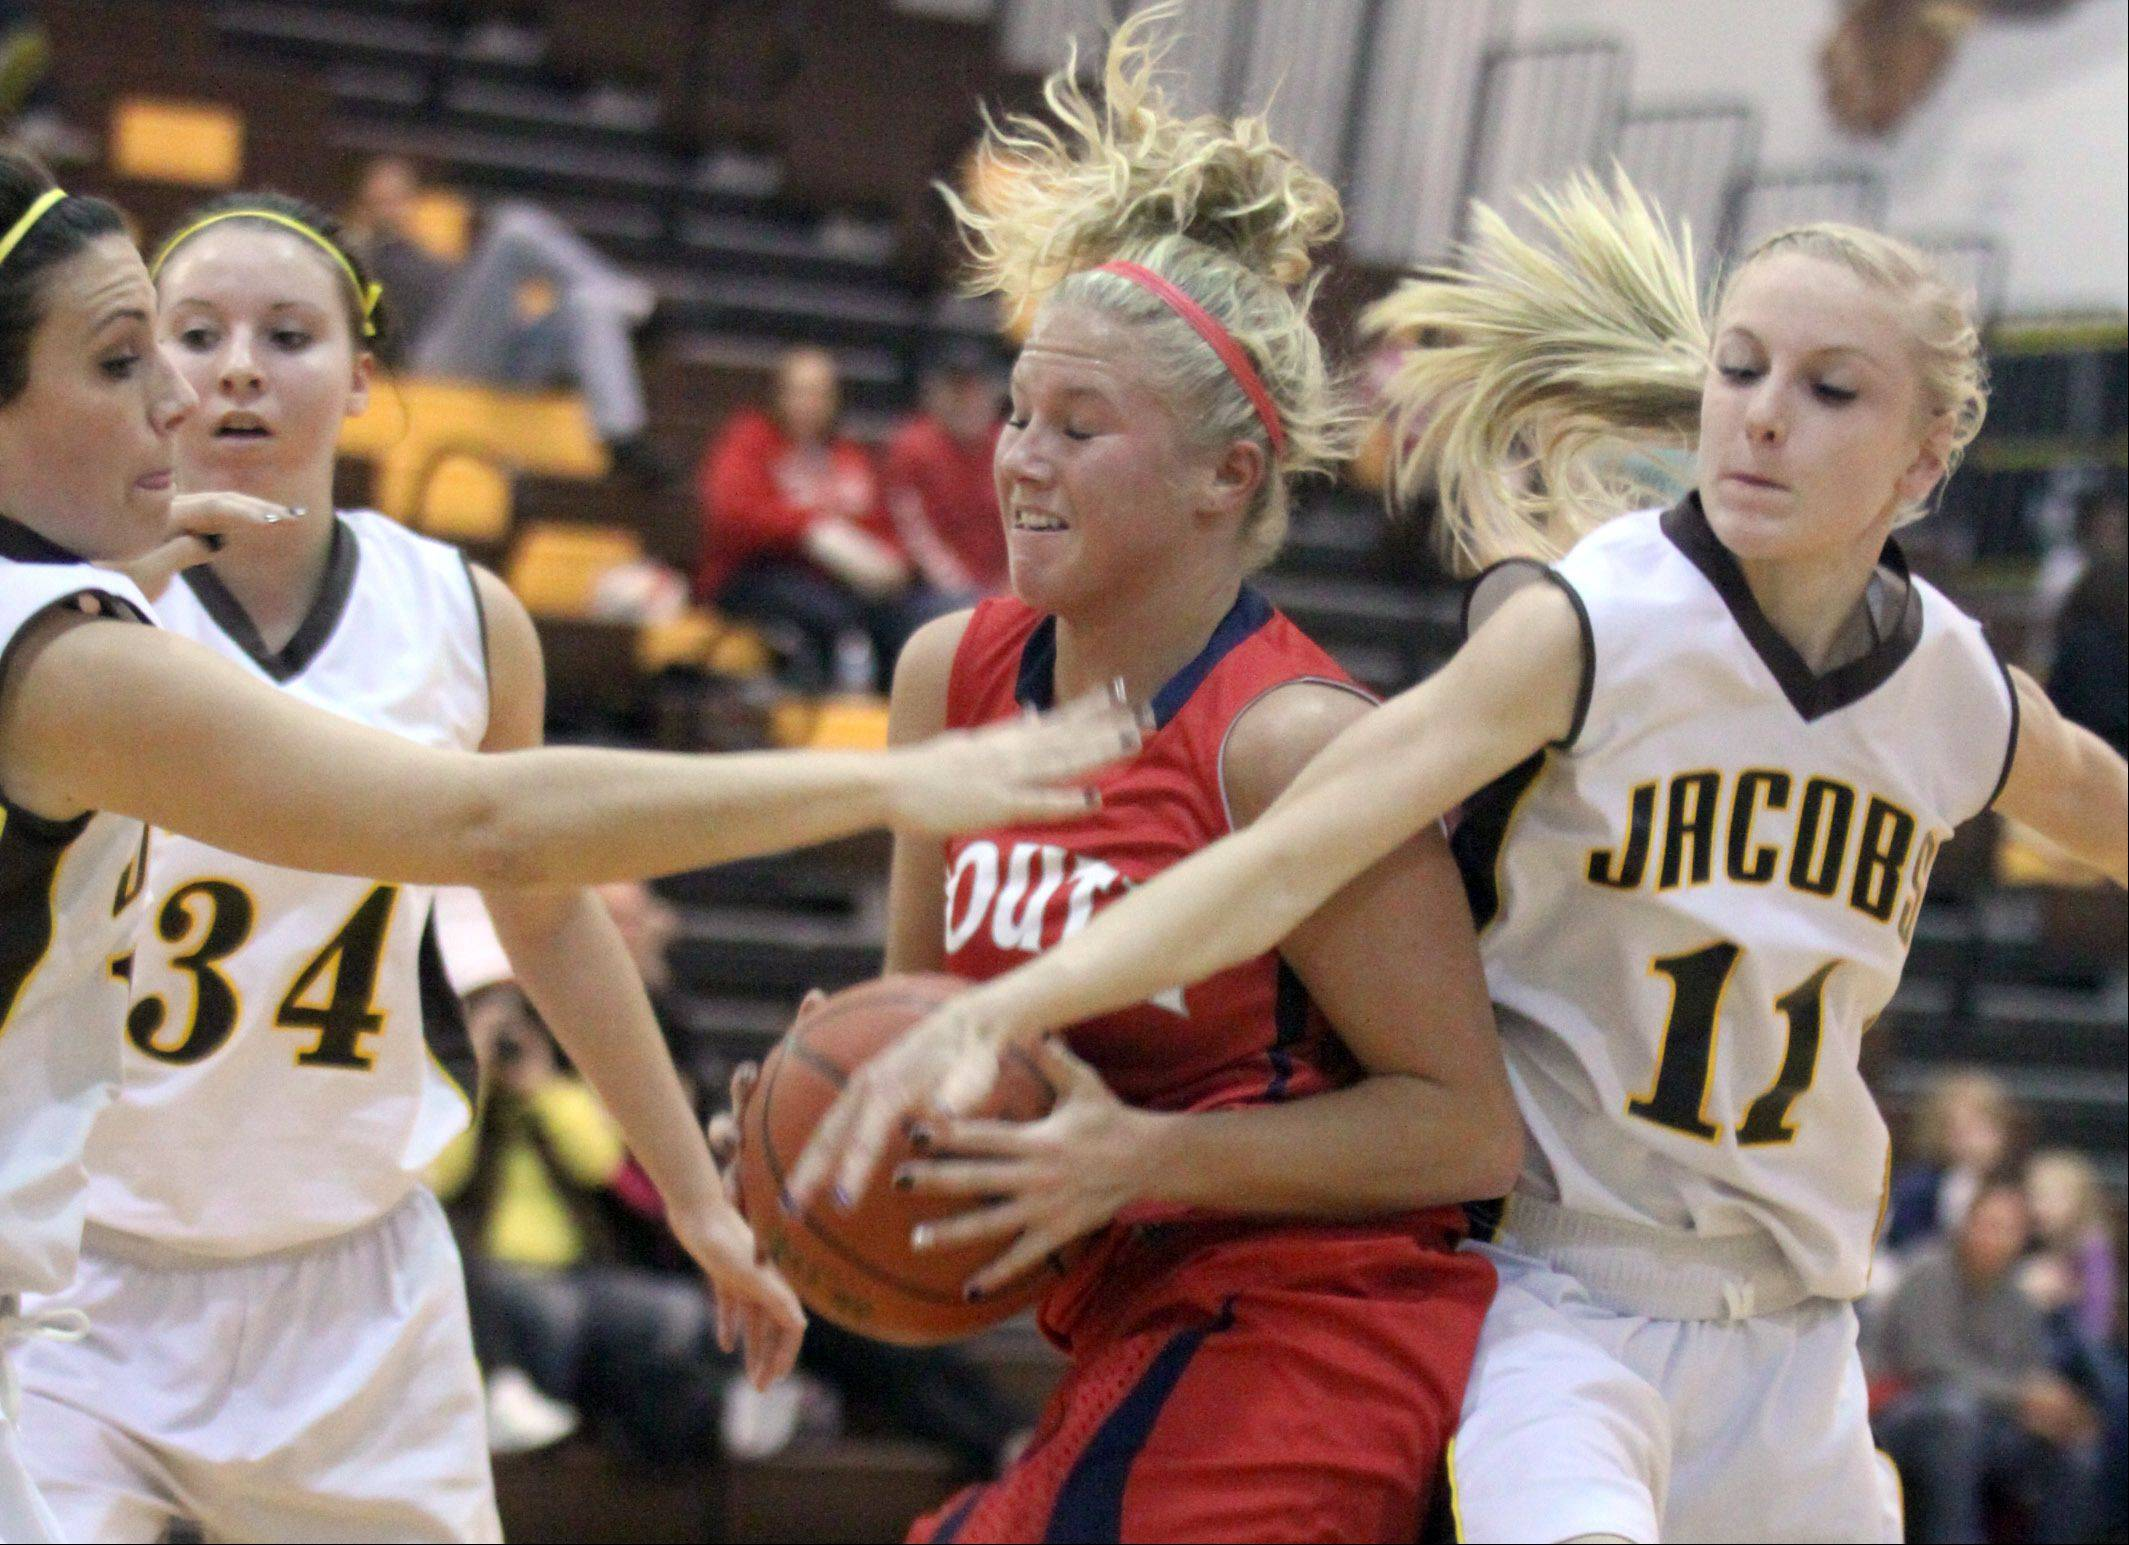 Jacobs' Payton Berg, left, and Lauren Van Vlierbergen try to stop South Elgin's Kara Rodriguez, center, during Tuesday's basketball game in Algonquin.